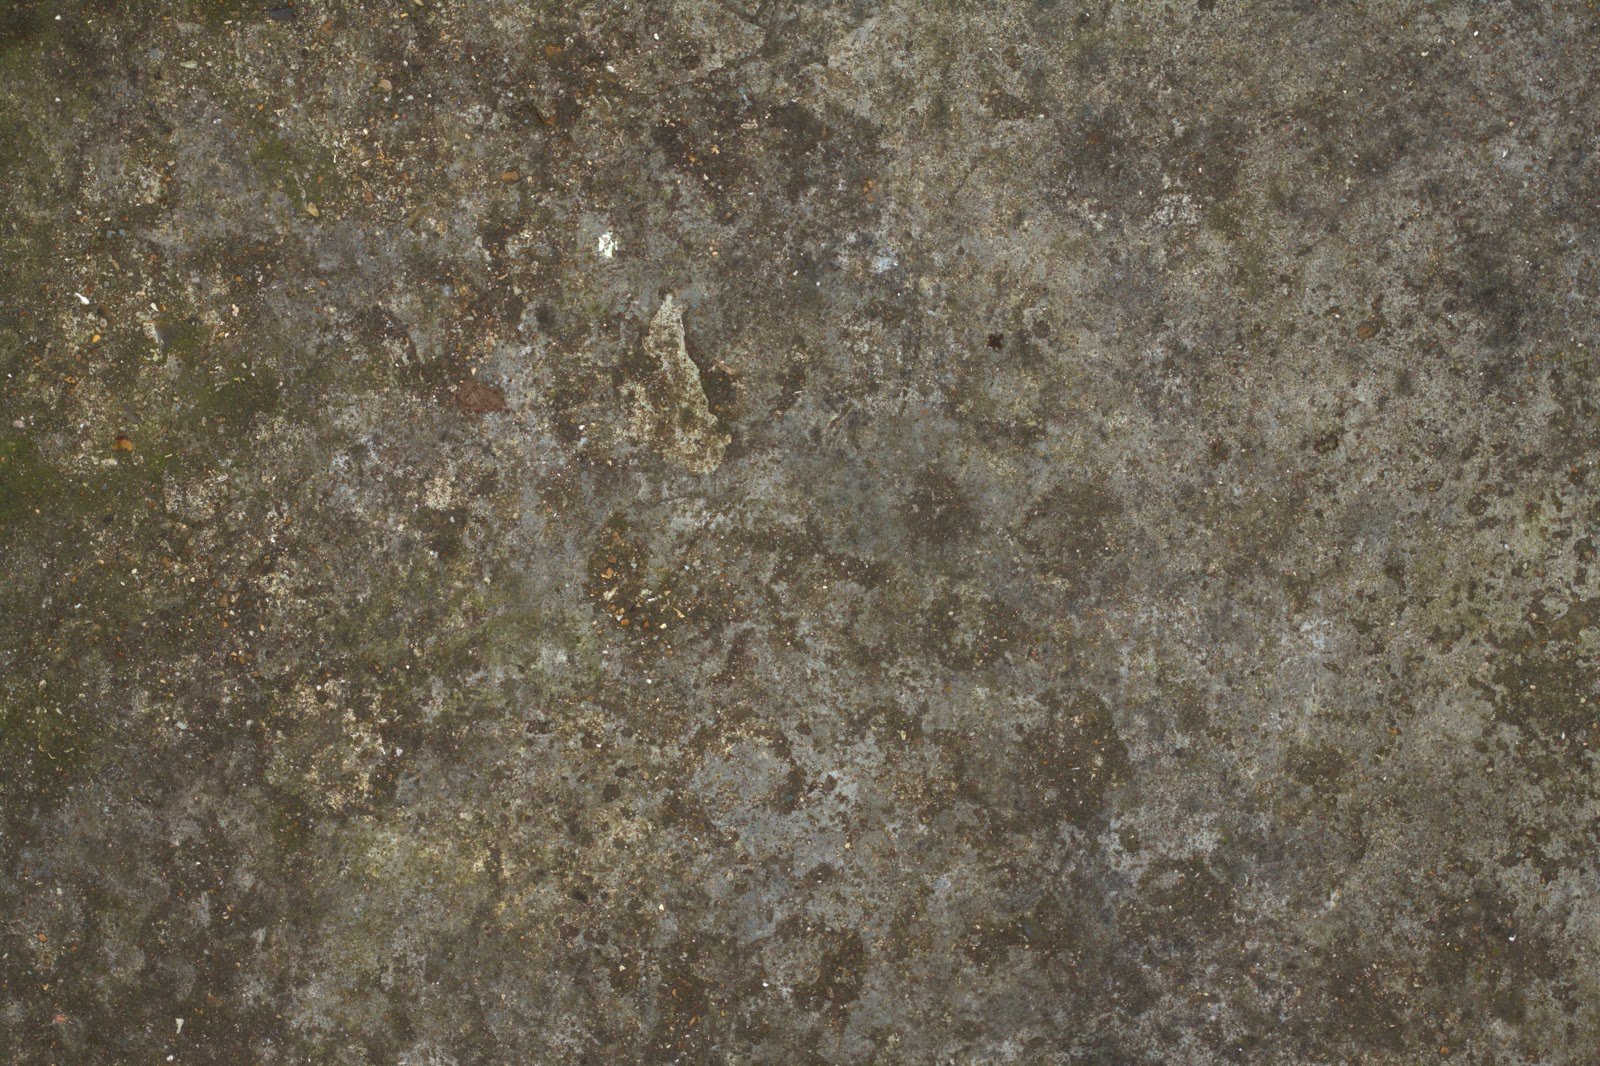 Concrete floor dirty moss texture 4770x3178